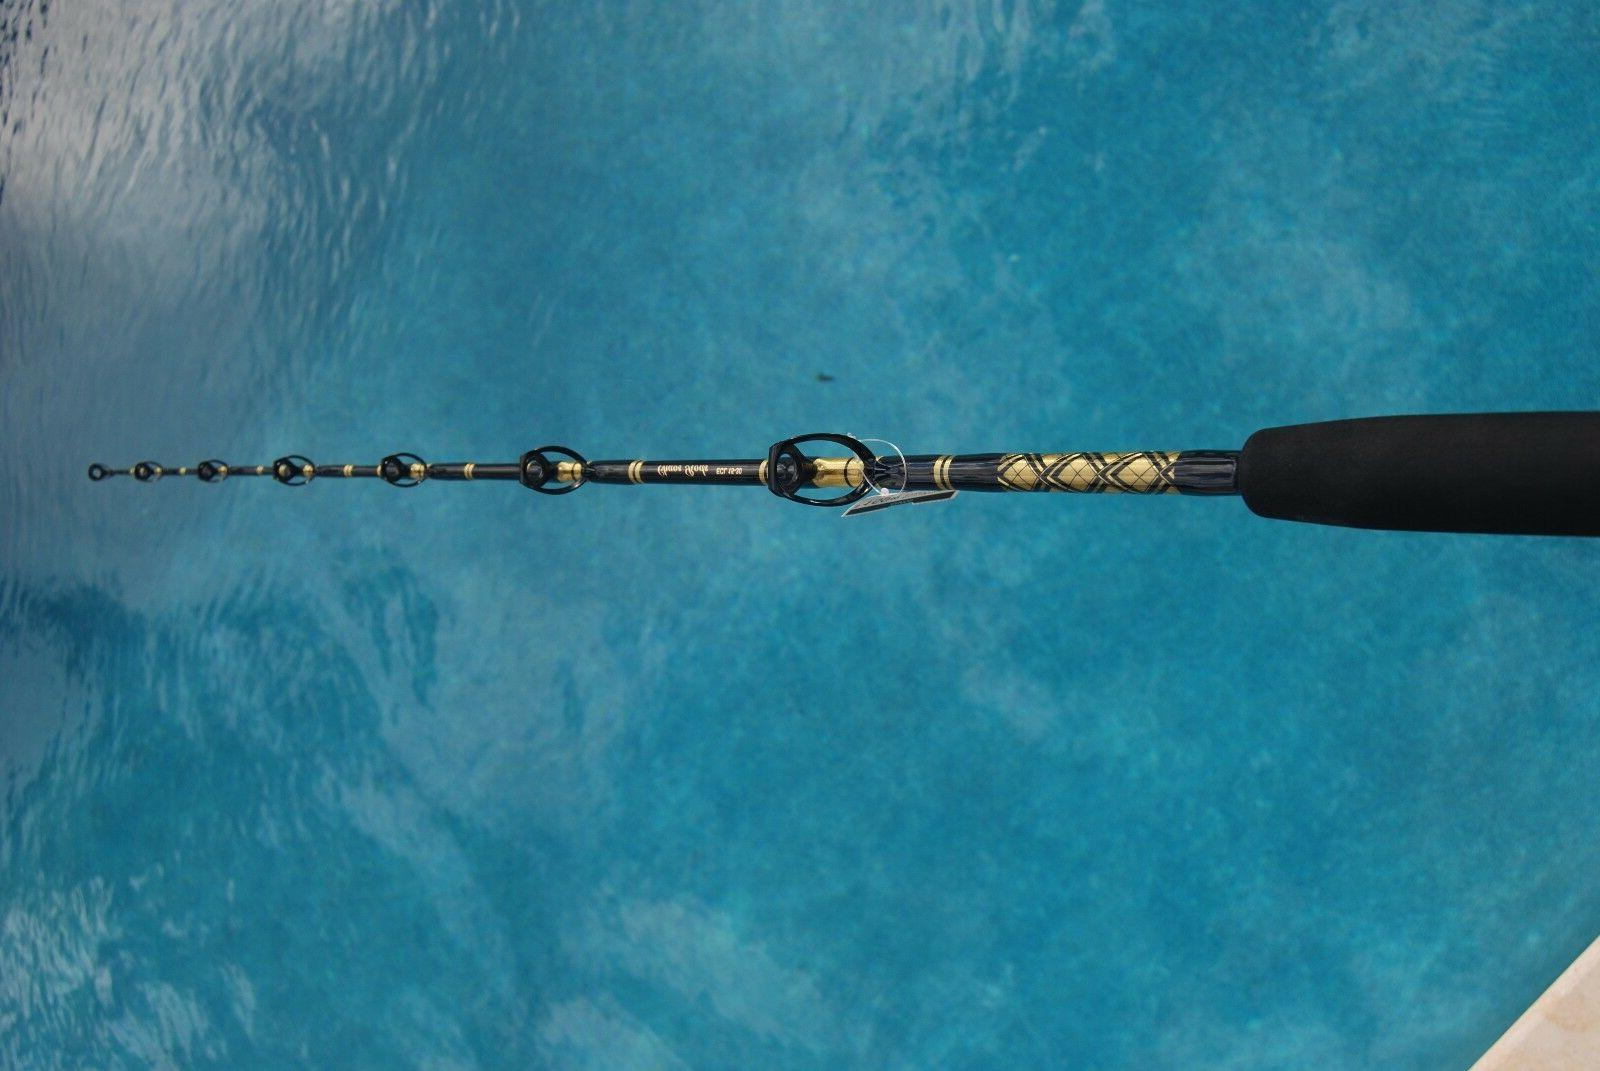 New 2 Speed CHAOS Rod